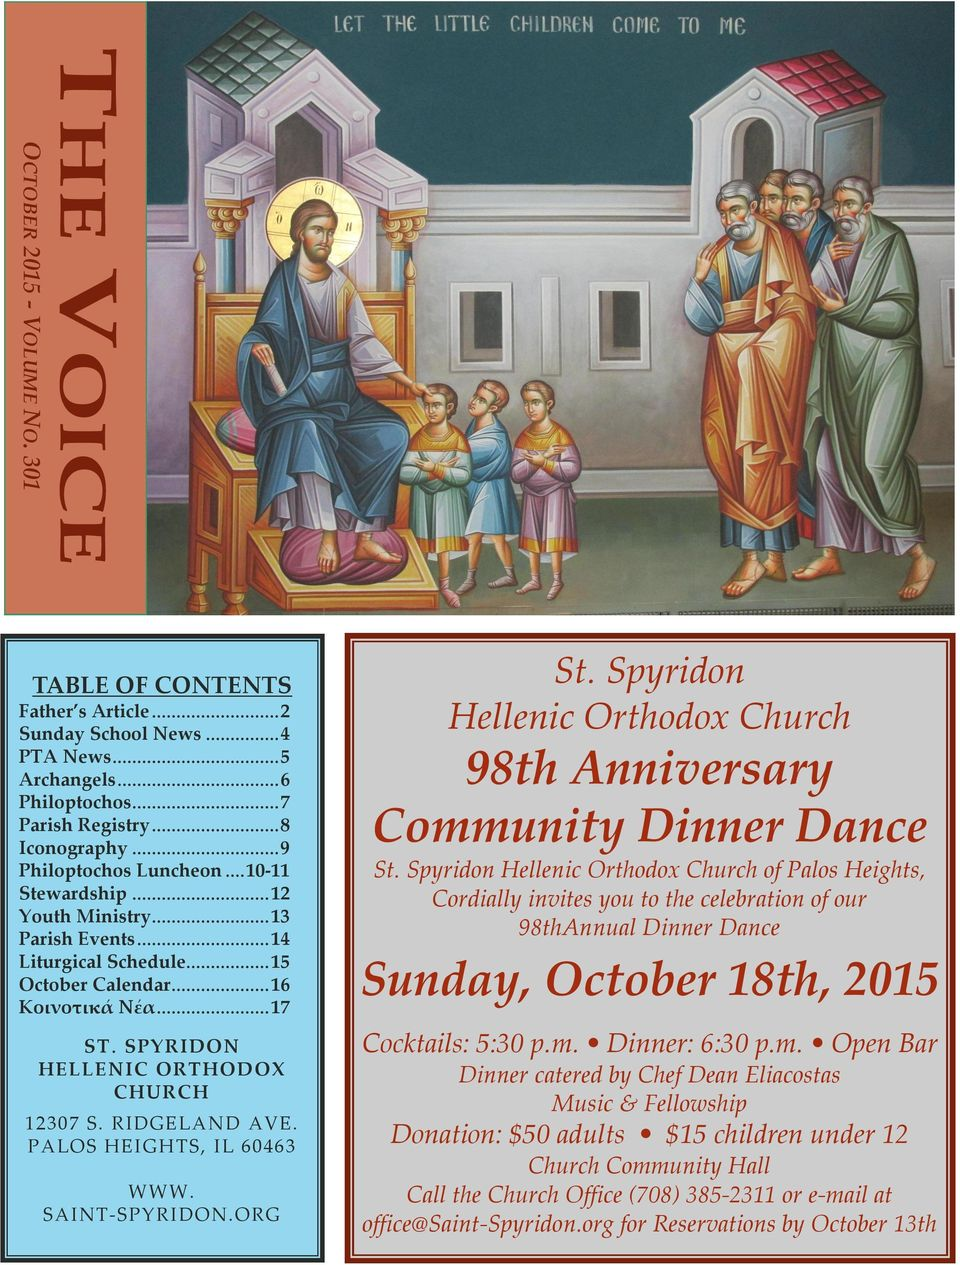 Spyridon Hellenic Orthodox Church 98th Anniversary Community Dinner Dance St.